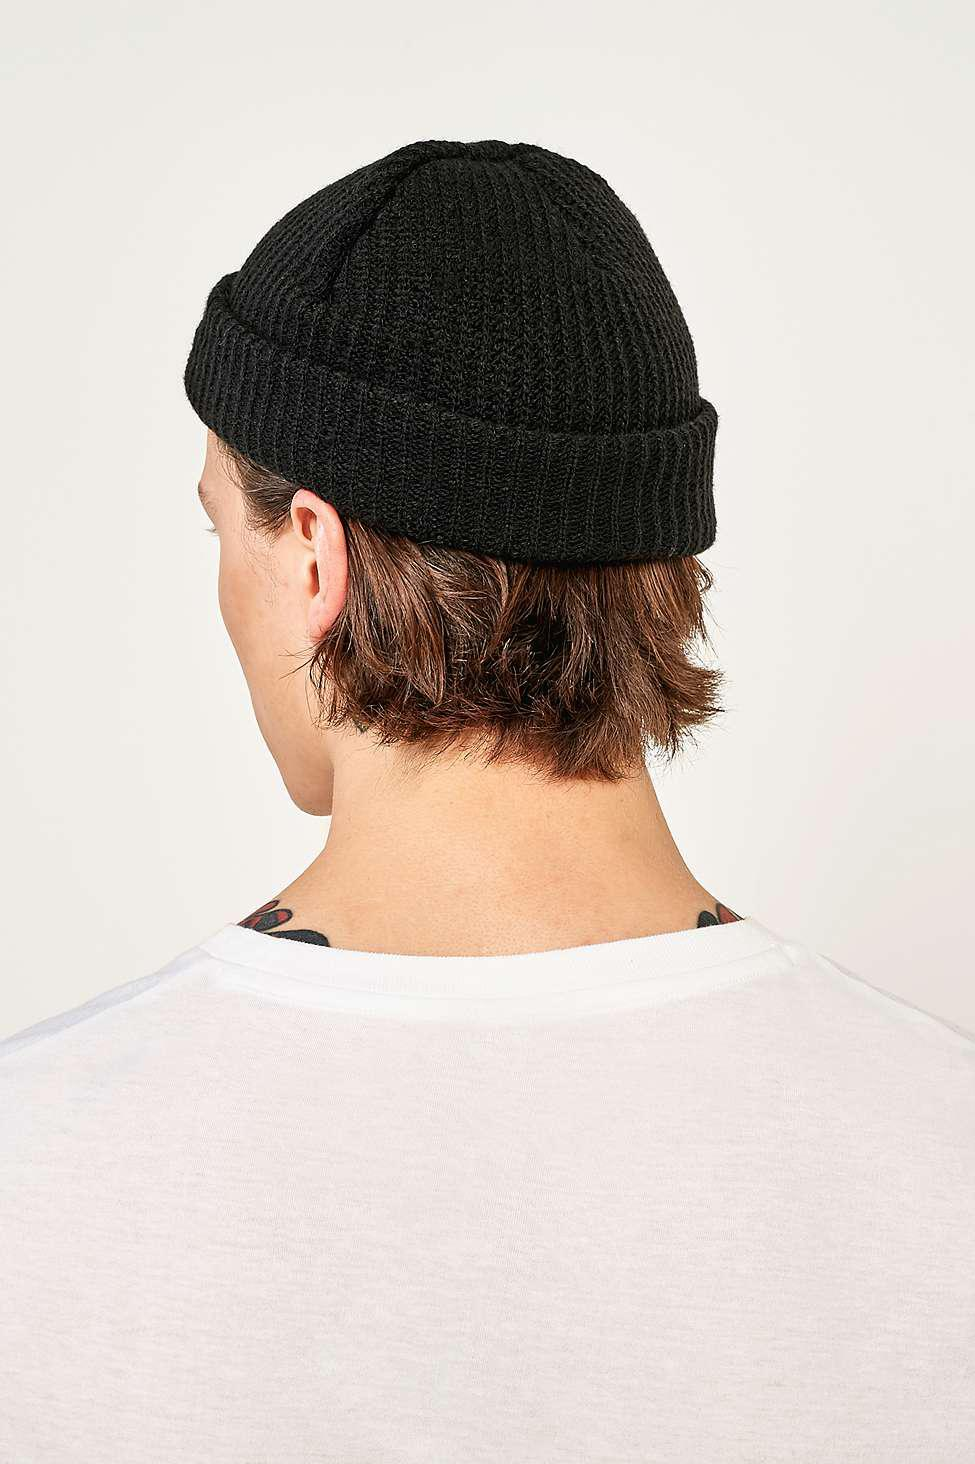 Urban Outfitters Uo Black Mini Roll Beanie - Mens All in Black for ... 5f17f5fac94